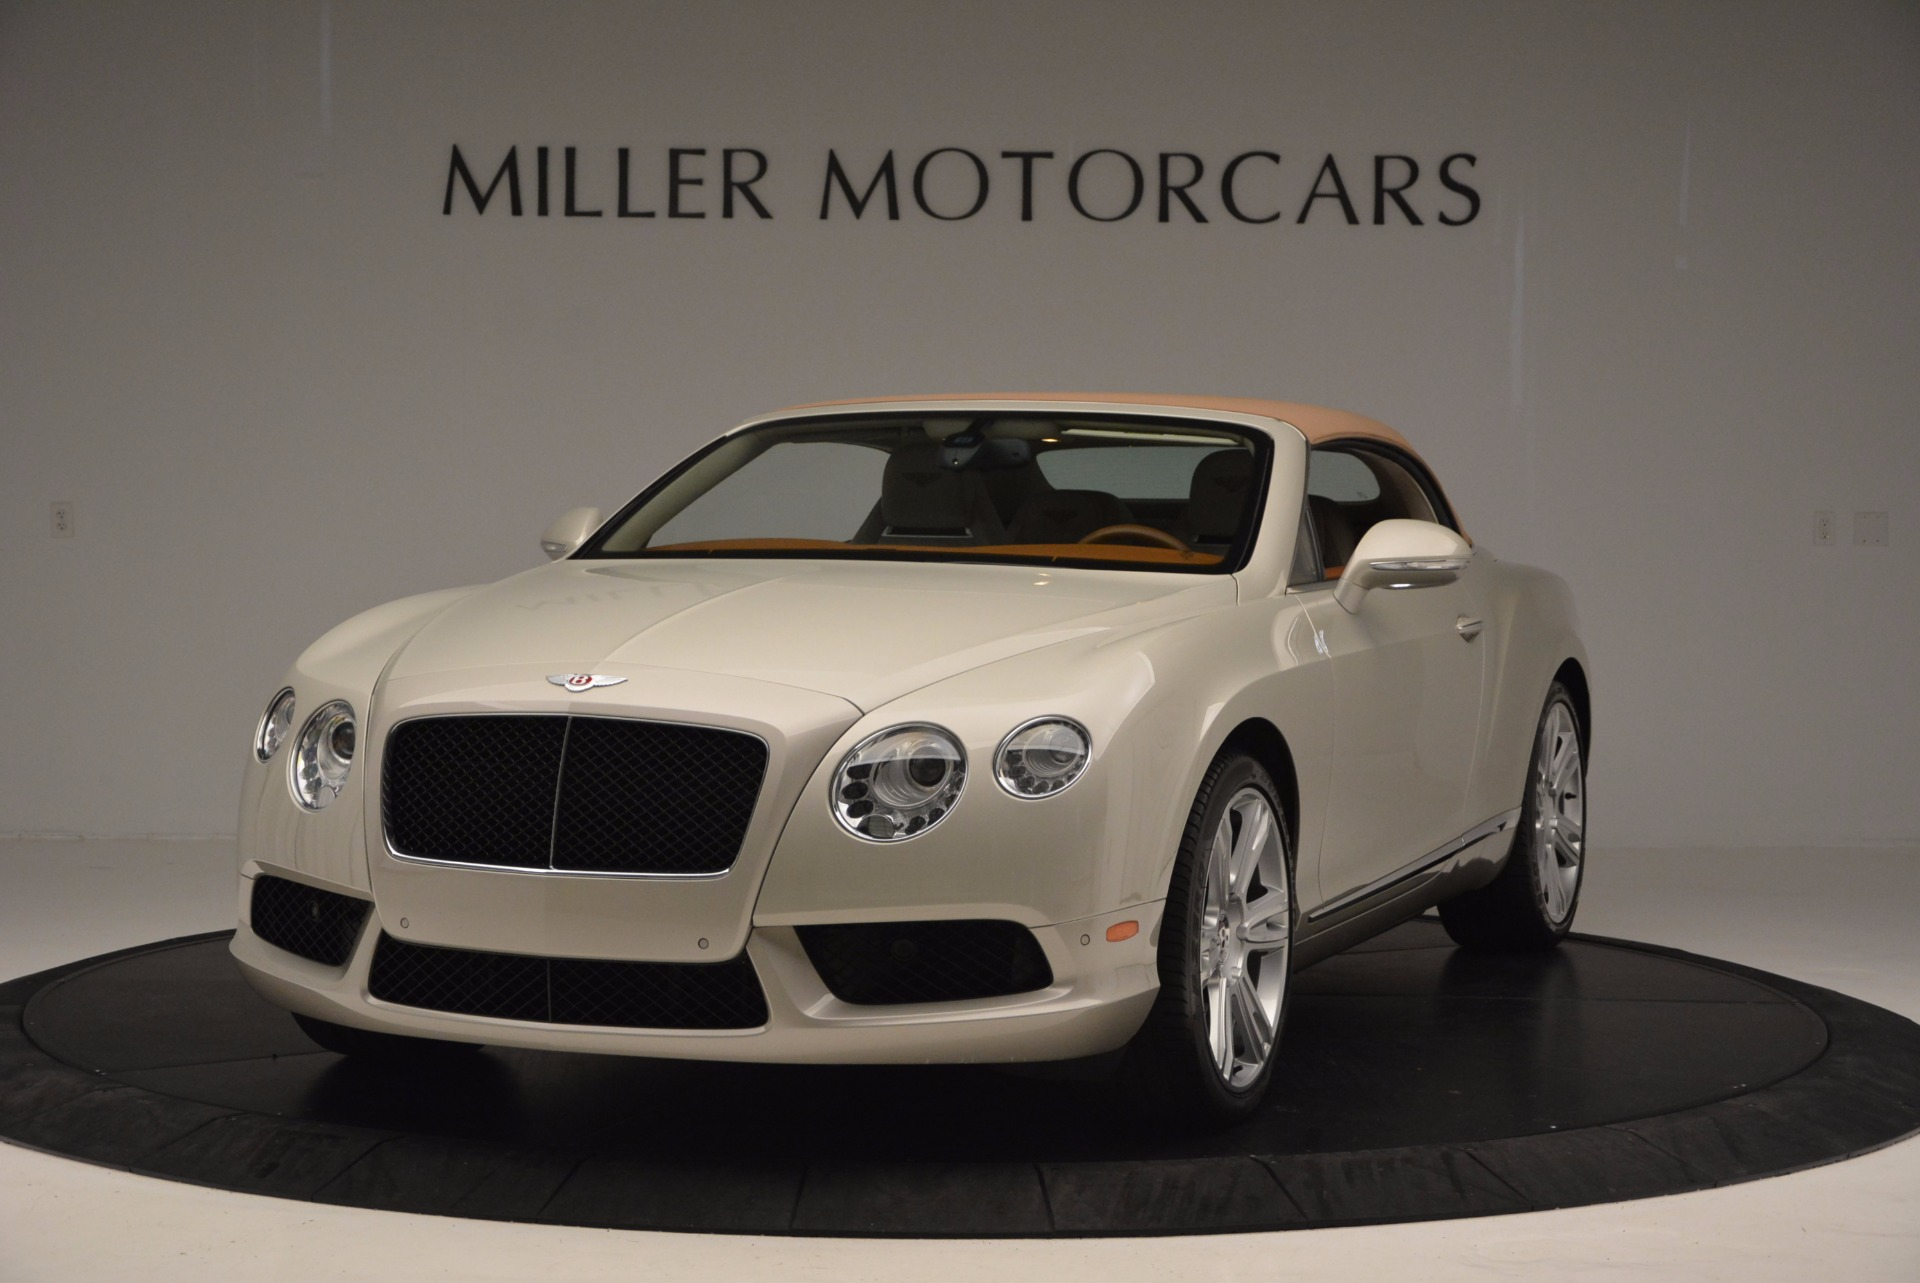 Used 2013 Bentley Continental GTC V8  For Sale In Greenwich, CT. Alfa Romeo of Greenwich, 7108 675_p14